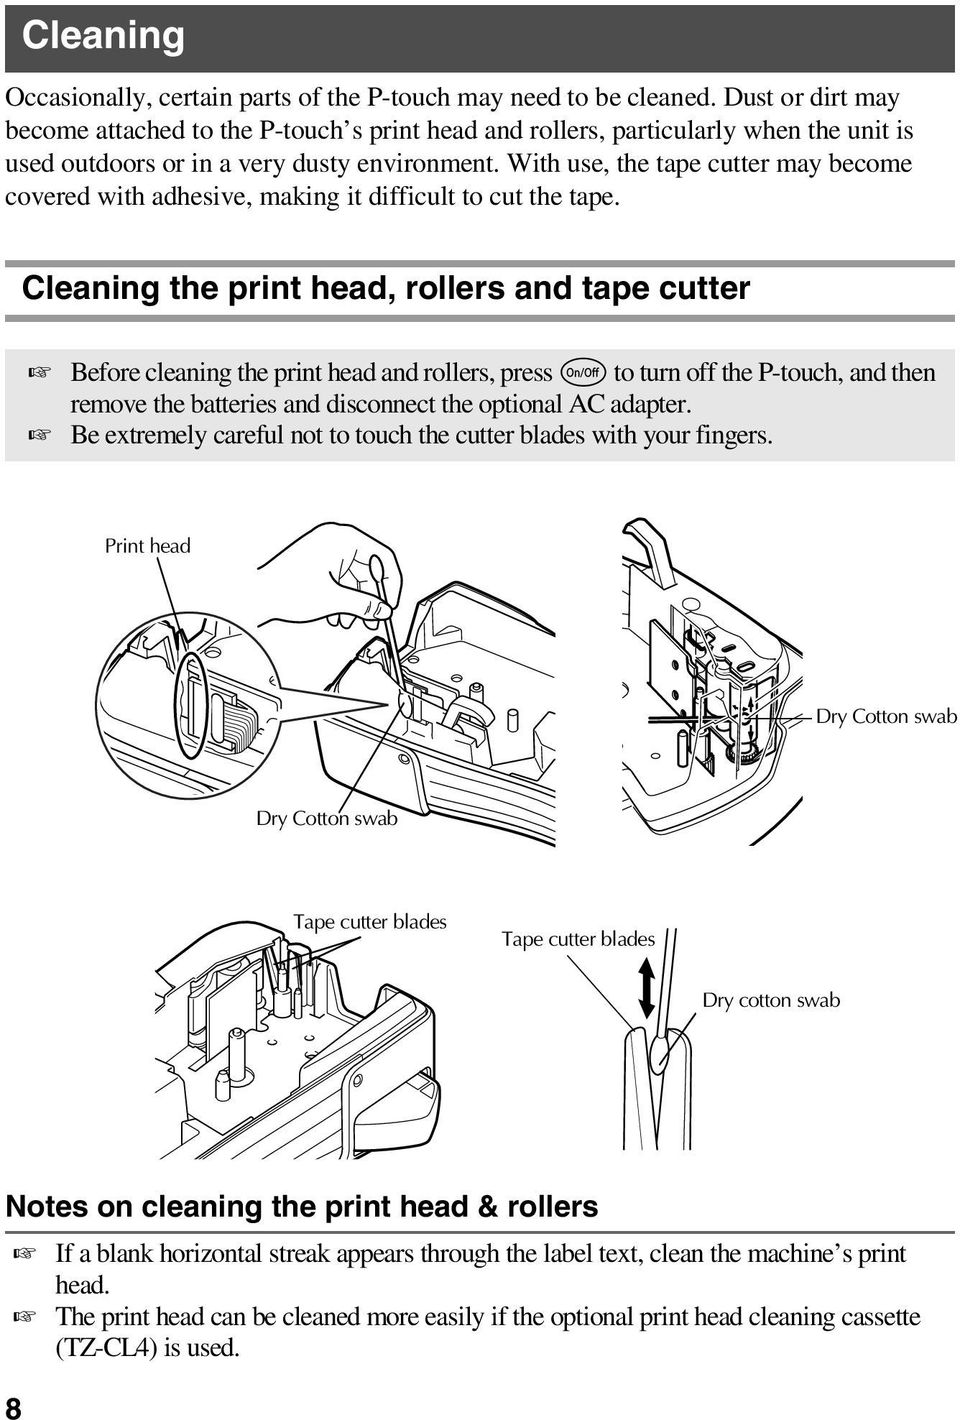 With use, the tape cutter may become covered with adhesive, making it difficult to cut the tape.